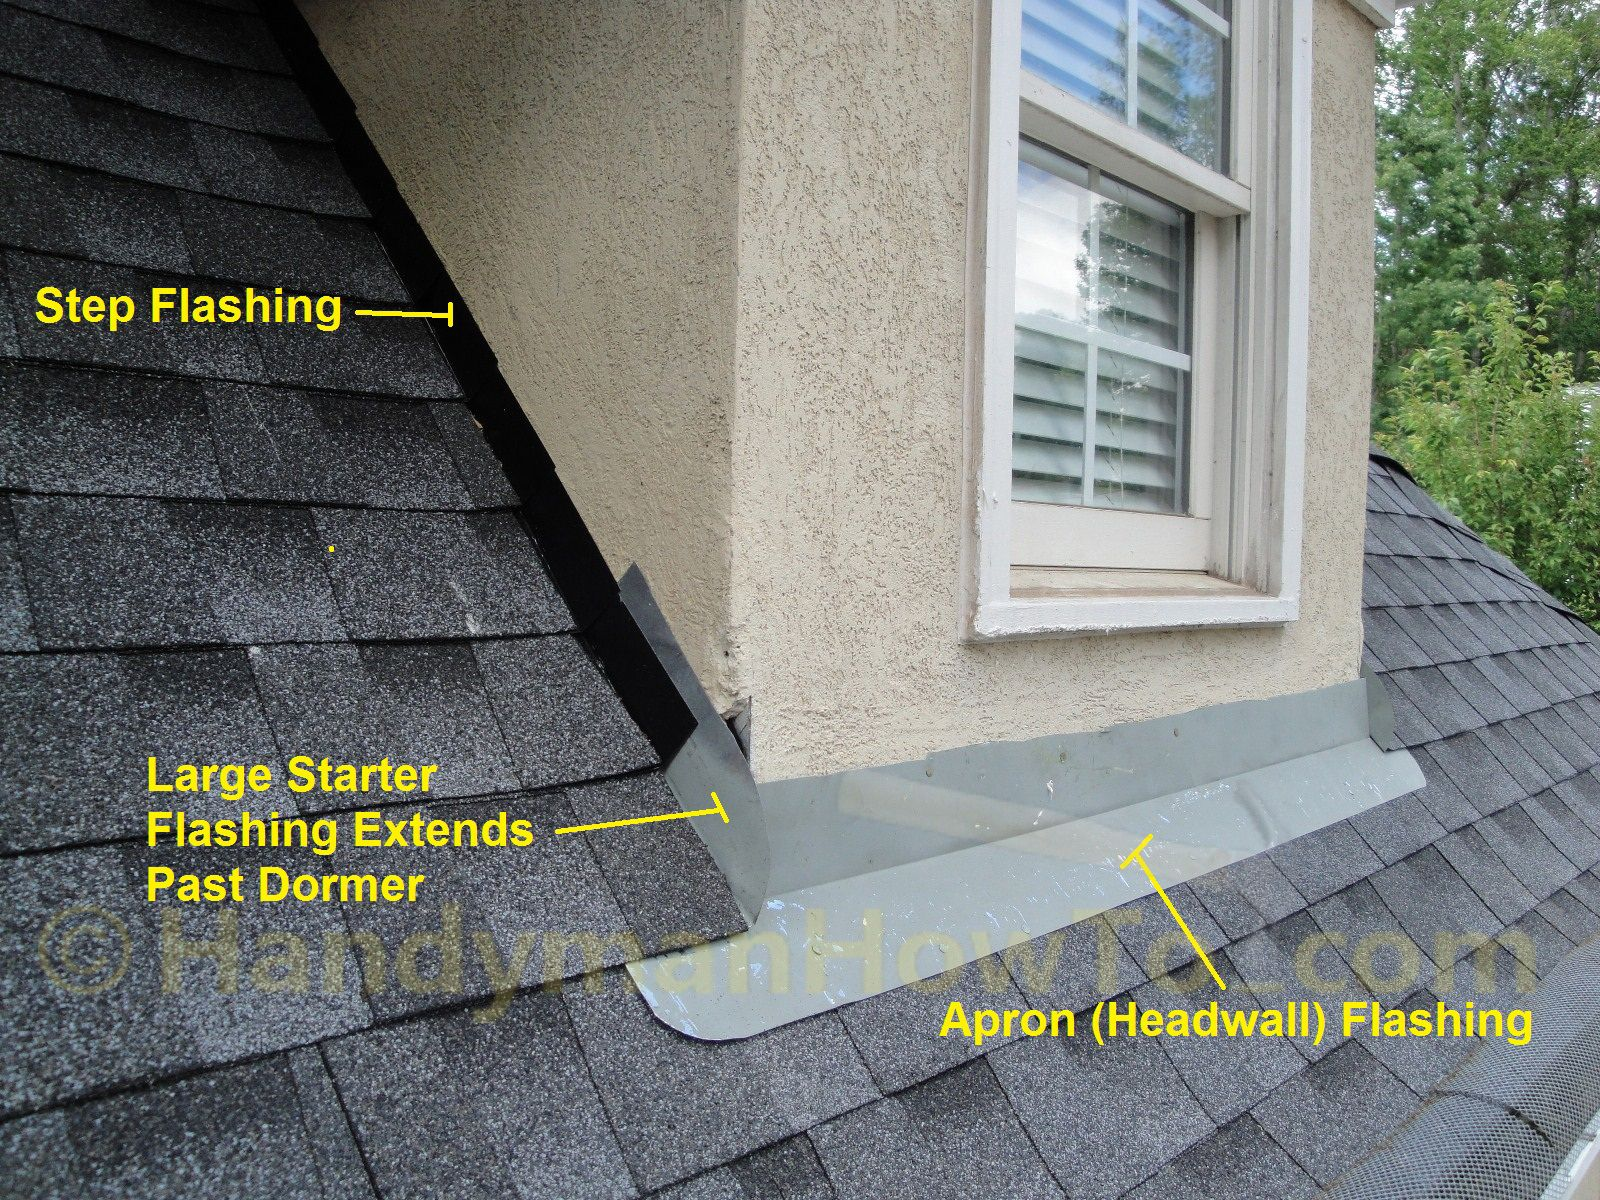 Dormer Roof To Wall Apron Flashing Entry Roof Flashing